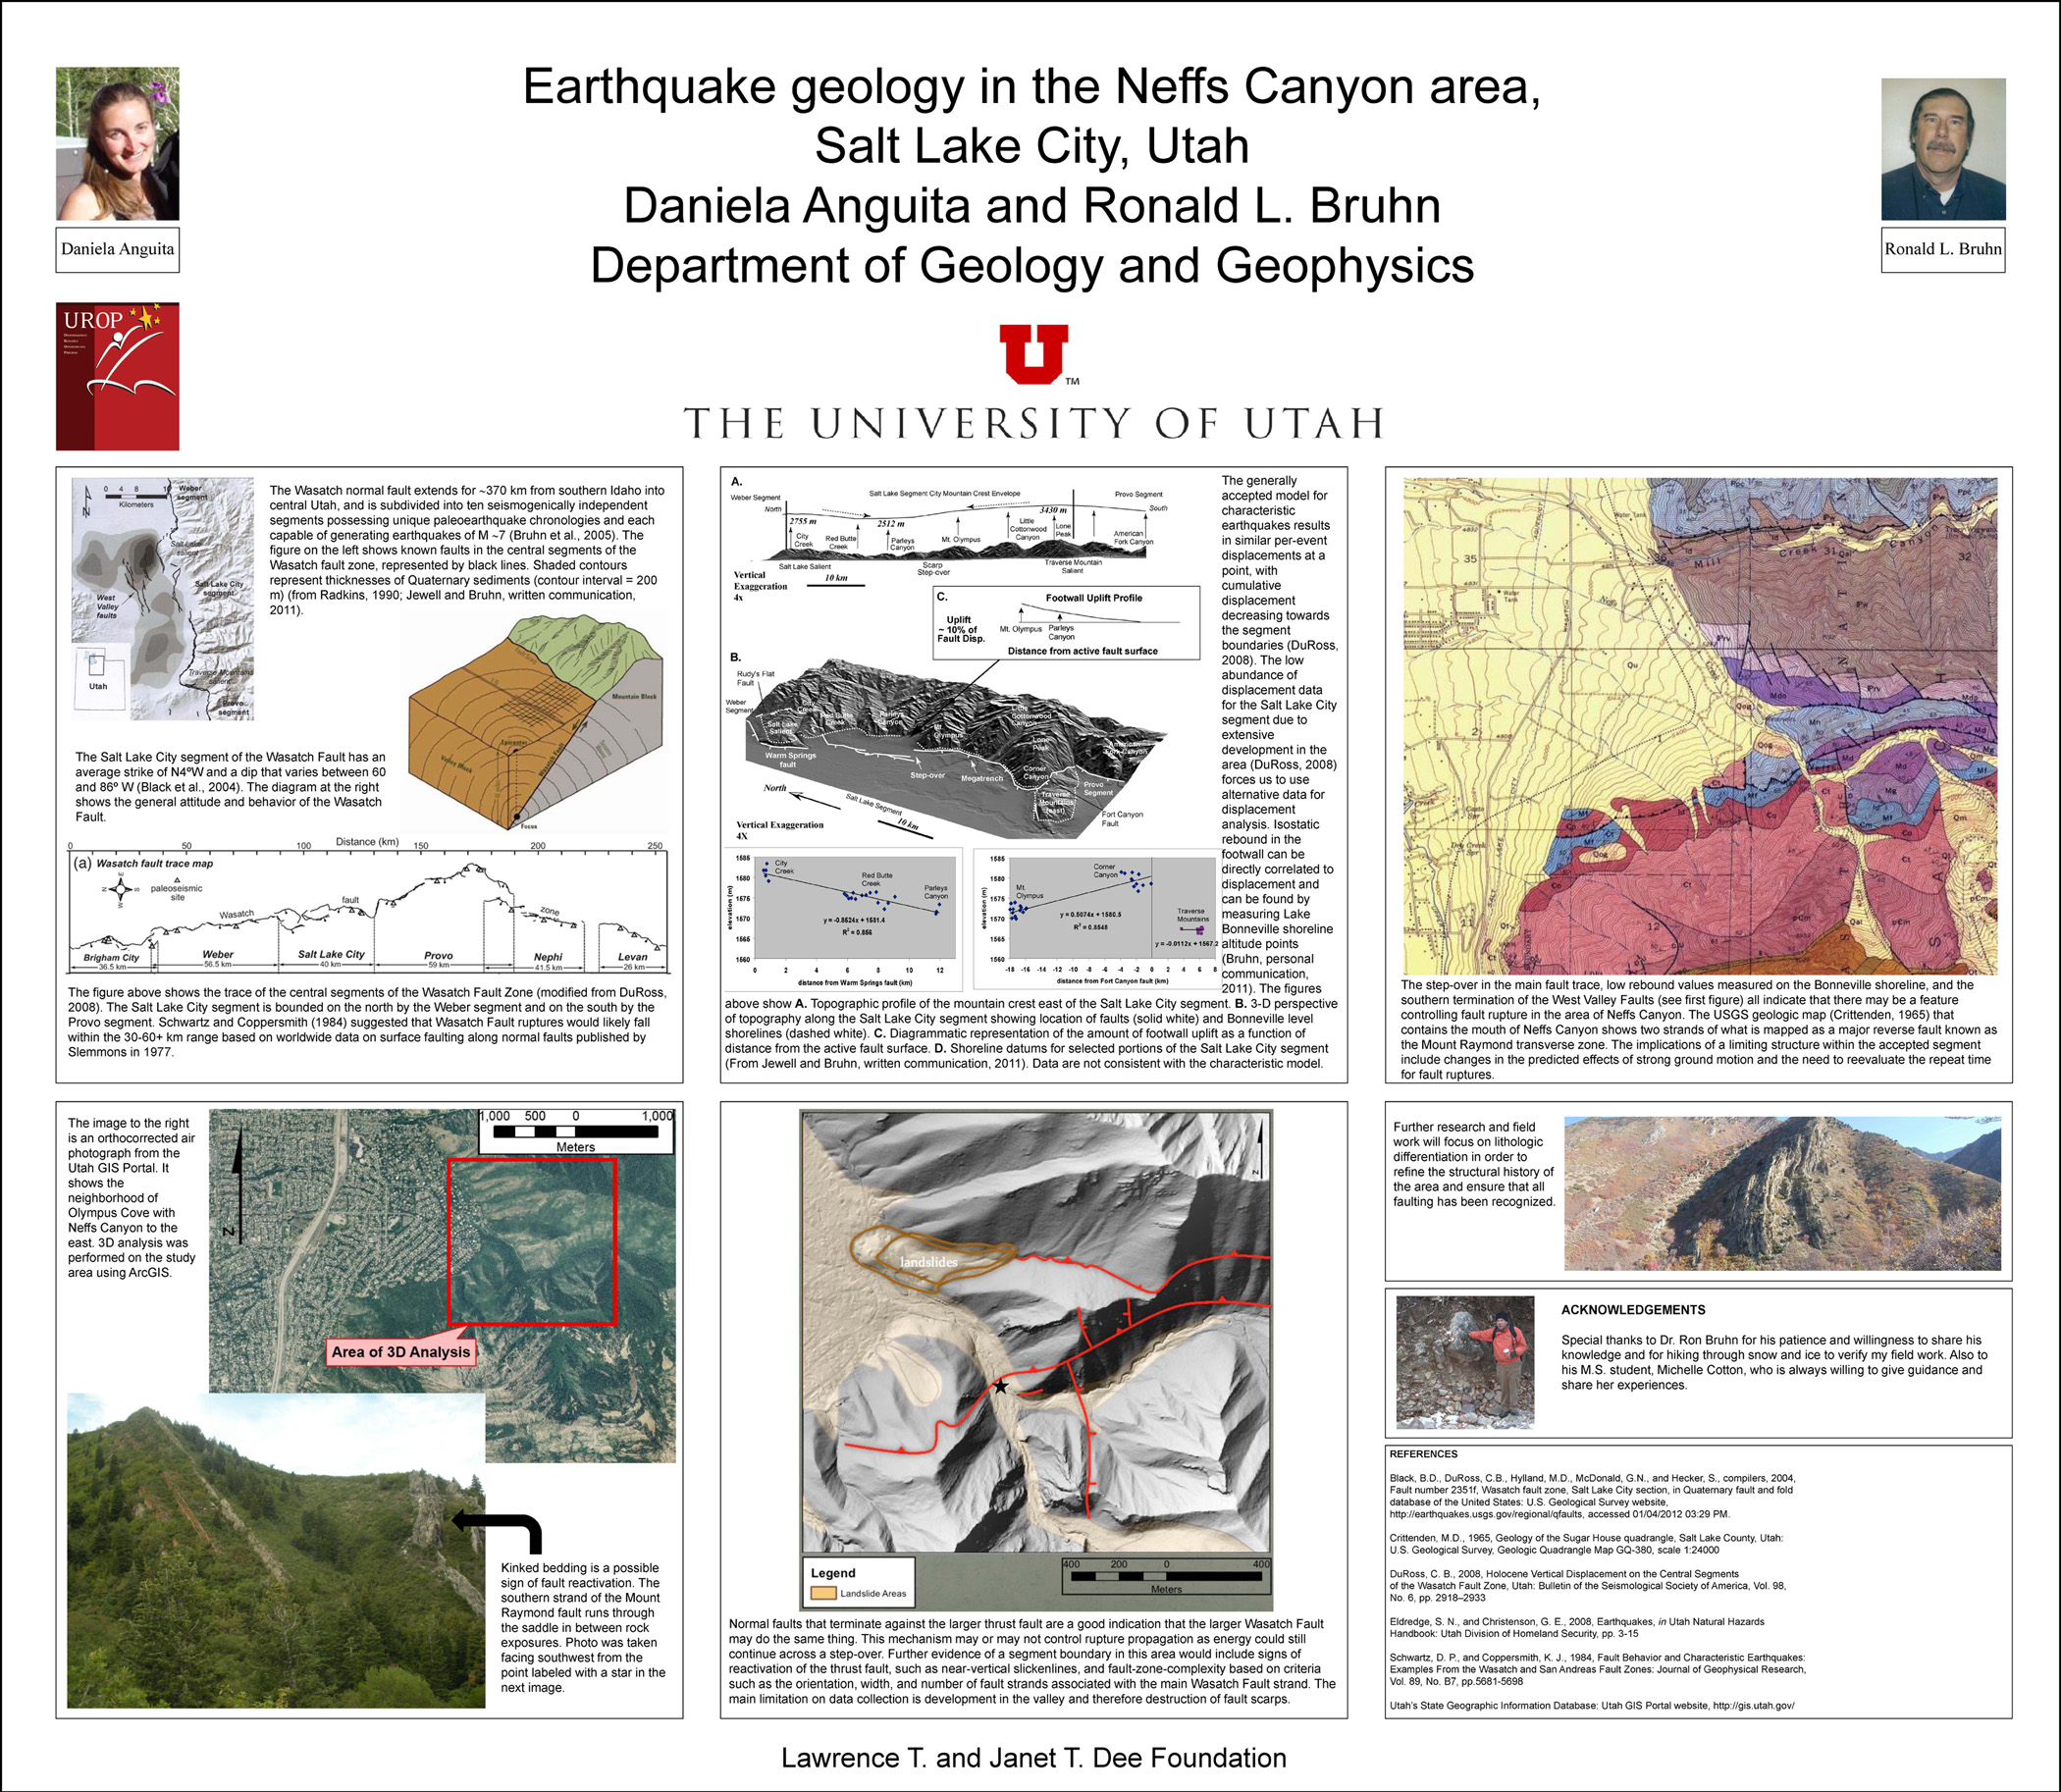 Wasatch Fault Structural Mapping in the area of Neffs Canyon, Salt Lake City, UT.